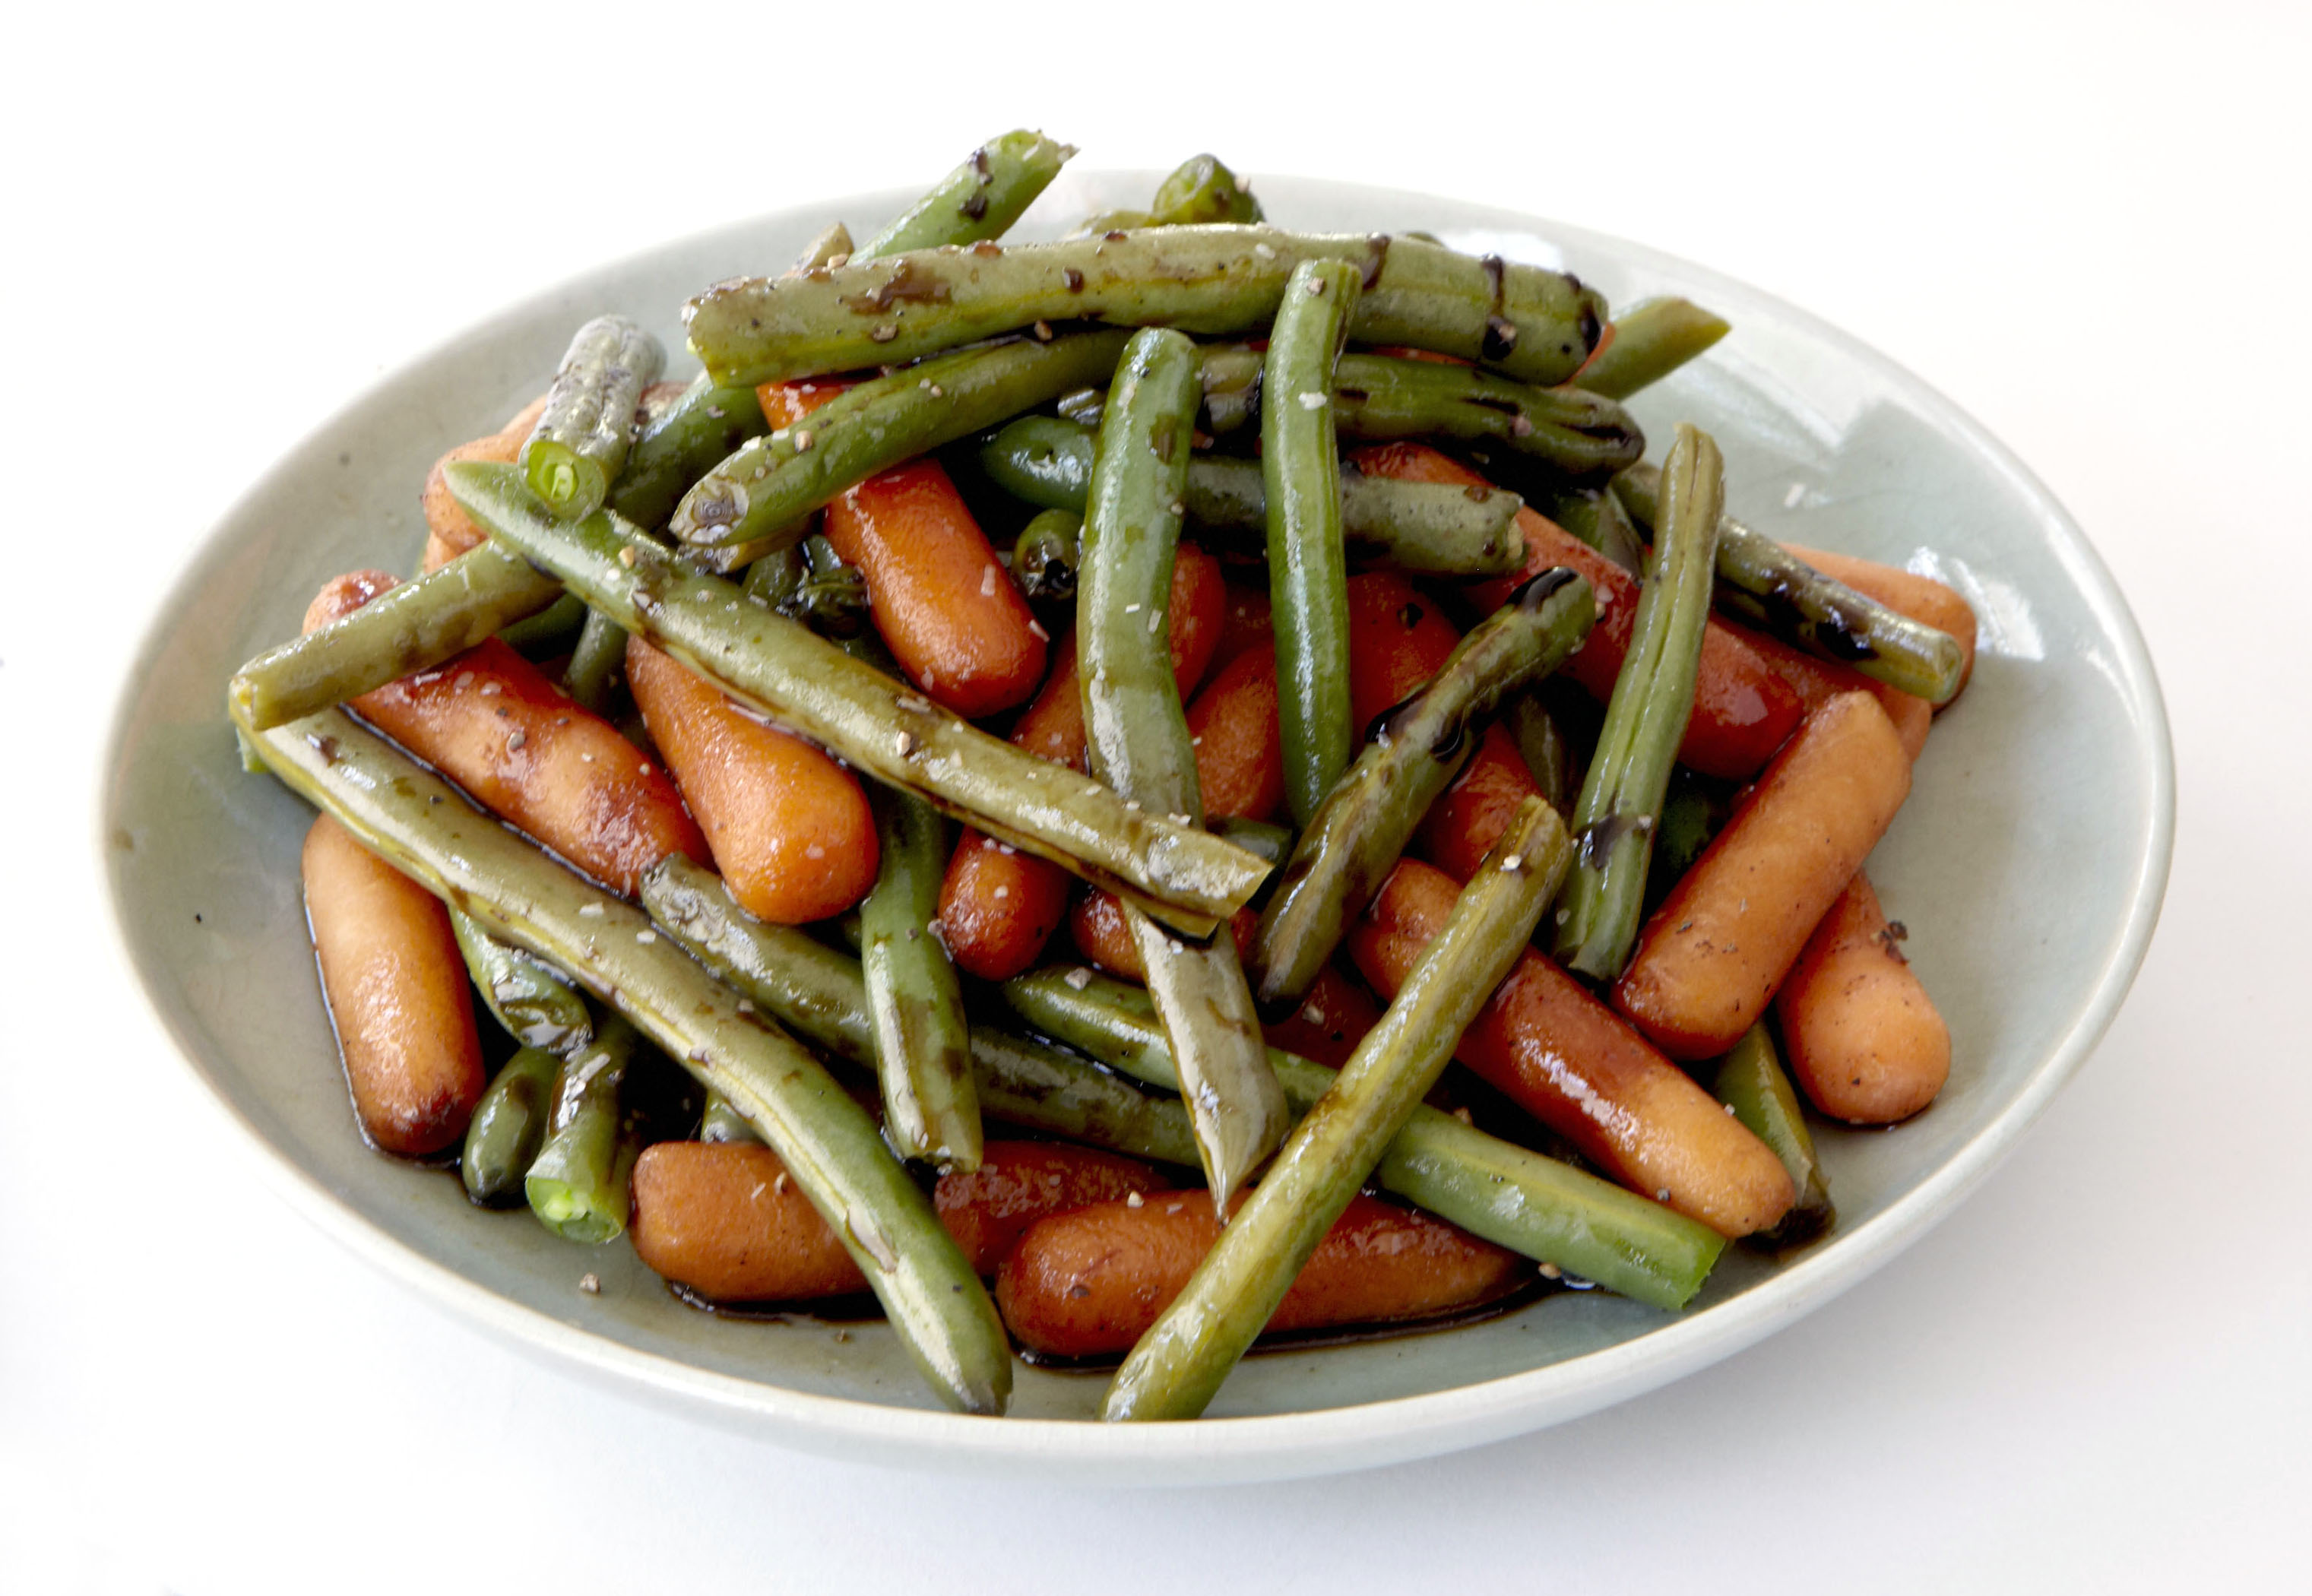 Balsamic-Glazed Green Beans and Carrots